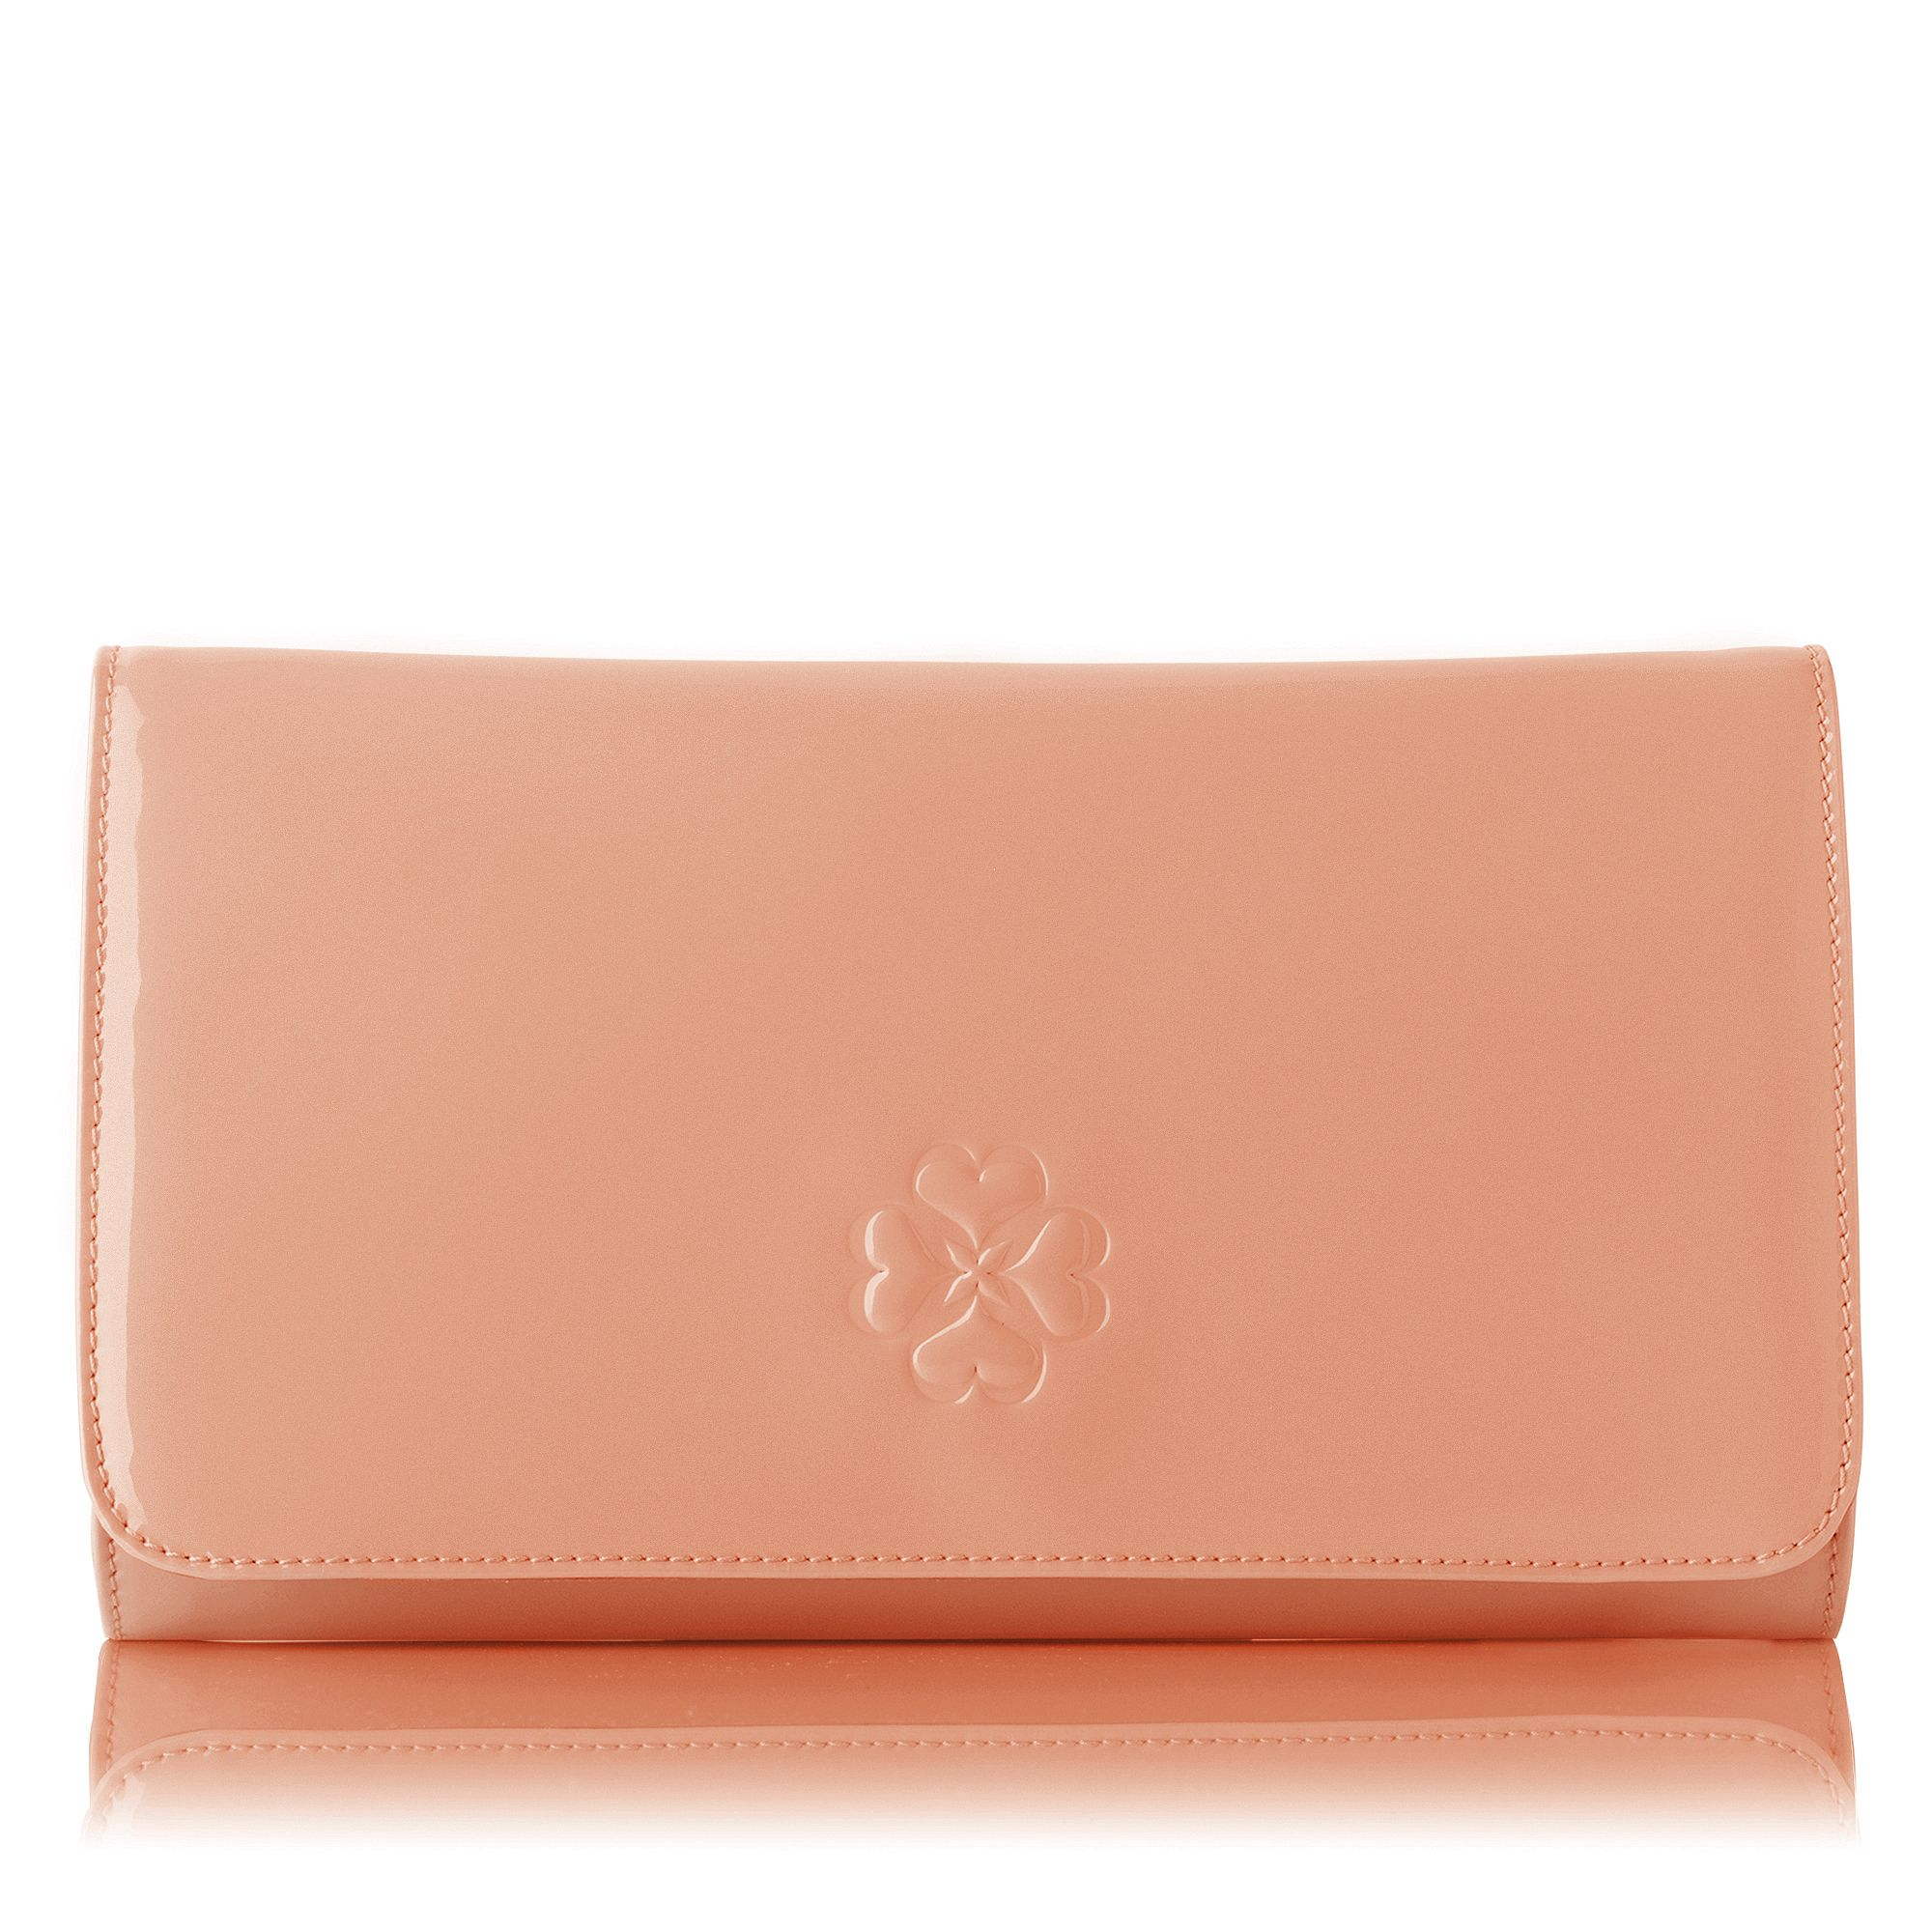 Frome patent leather clutch bag